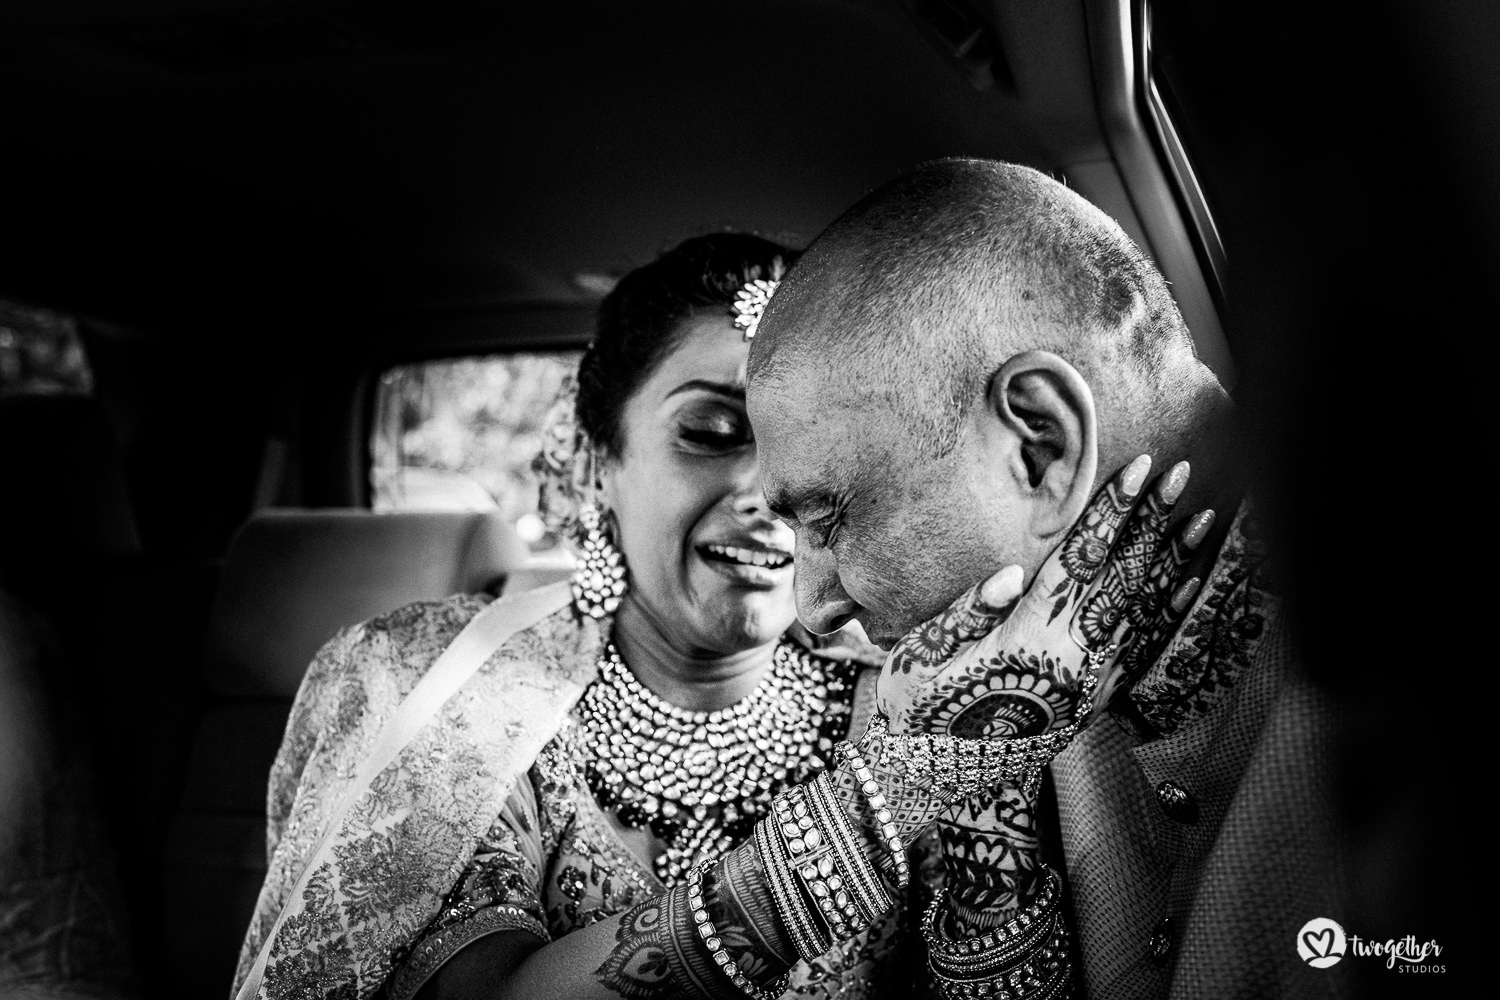 Indian bride cries as she bids her father farewell at a Kenya destination wedding